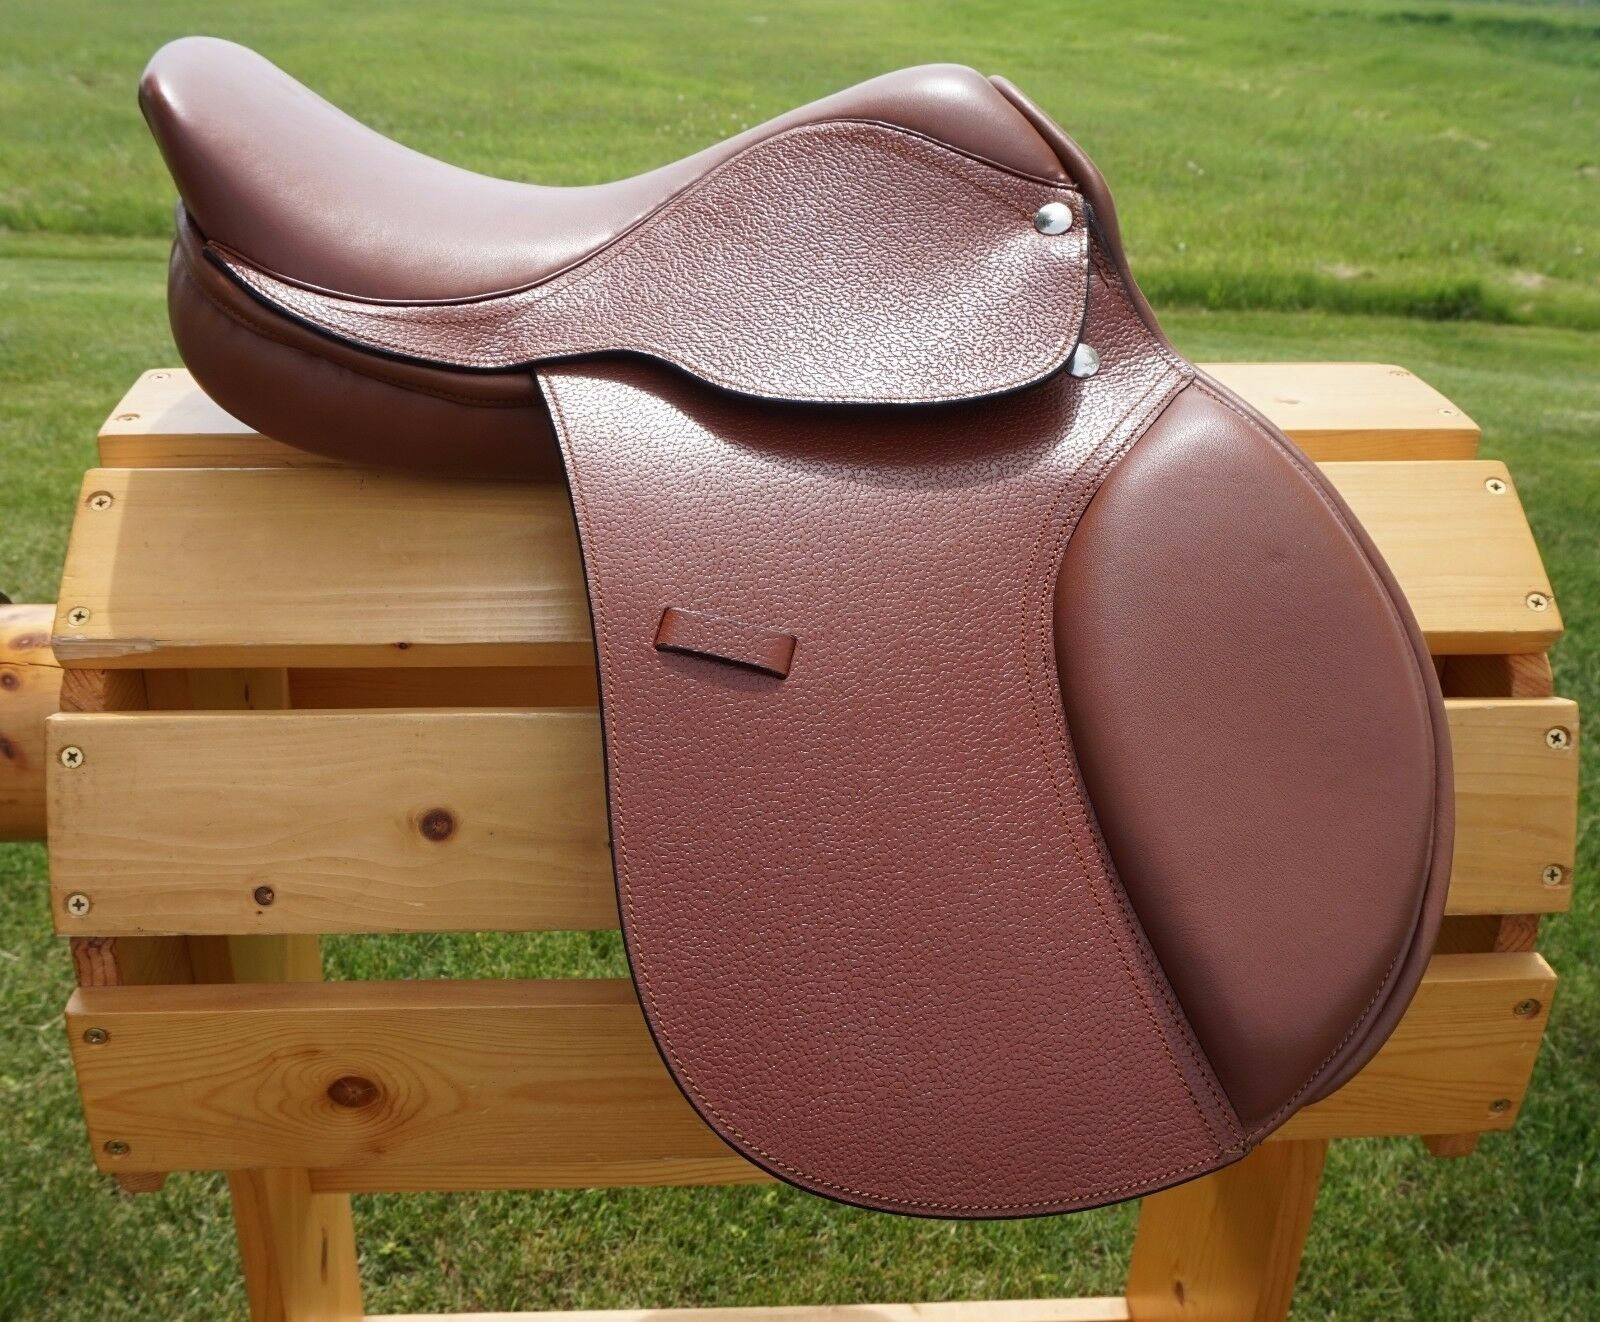 12 13 15 Tan Youth Close Contact English Leather Saddle with Free Leathers